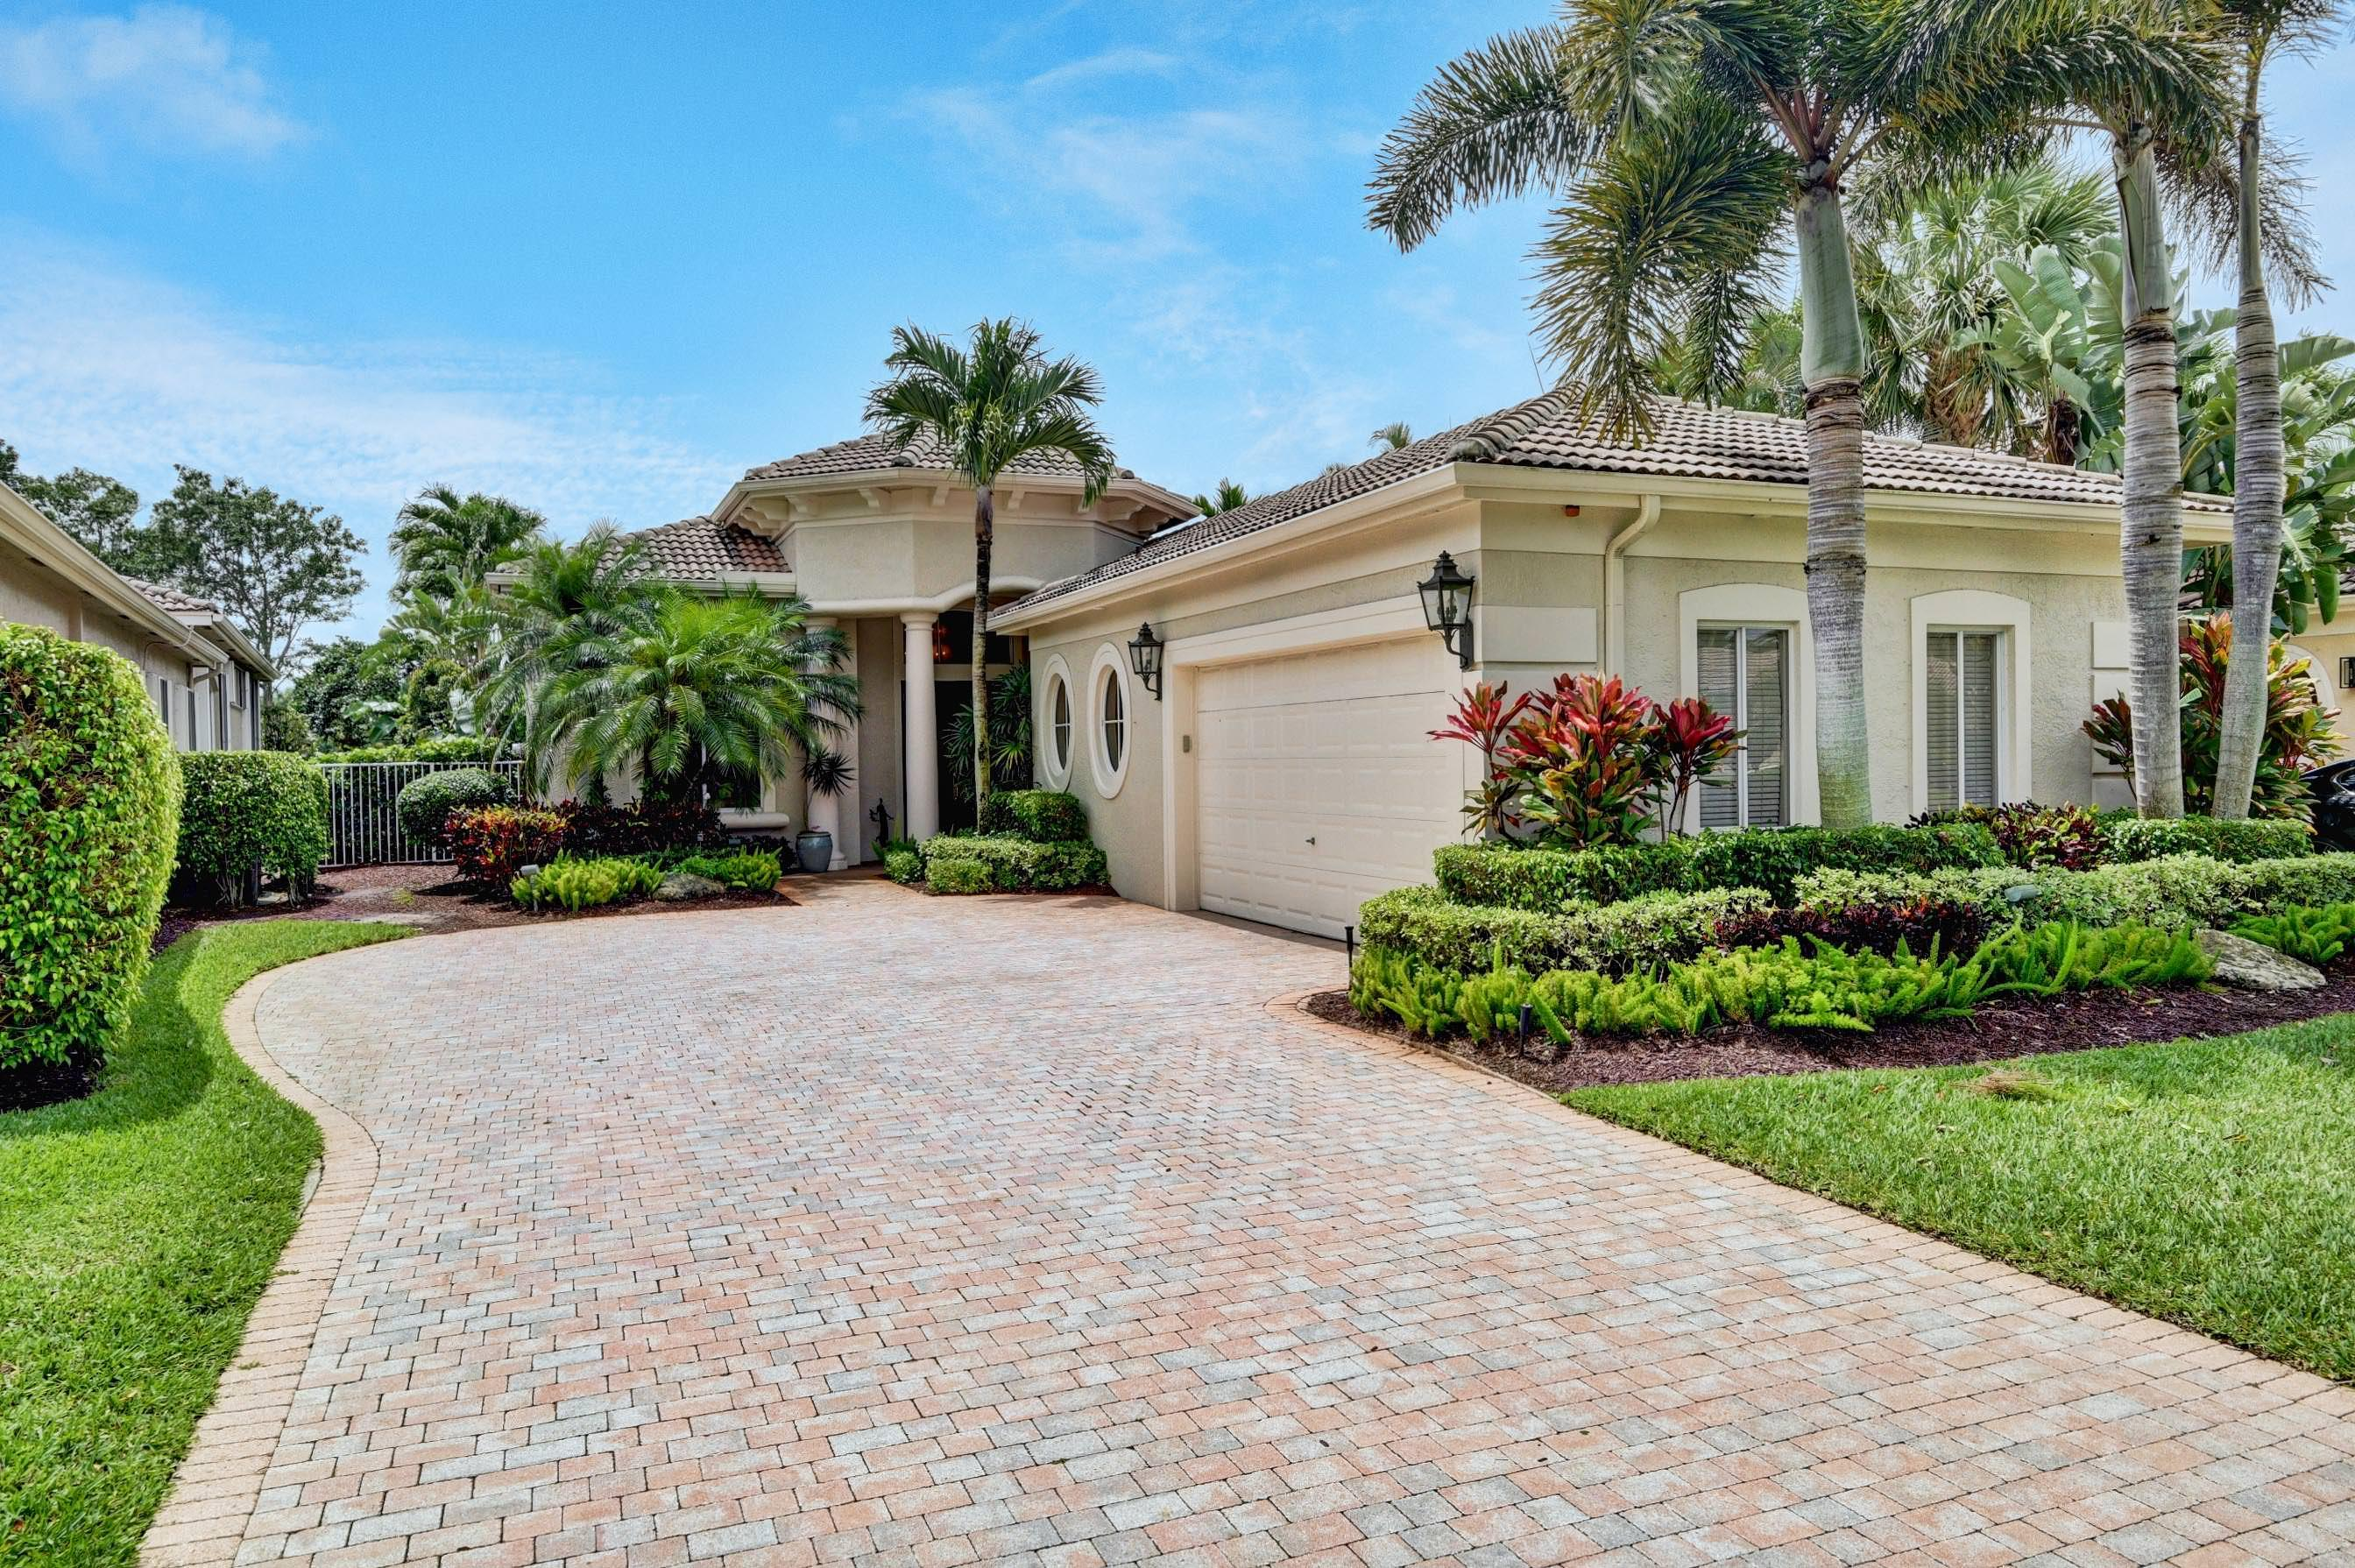 7743 Villa D' Este Way  Delray Beach, FL 33446